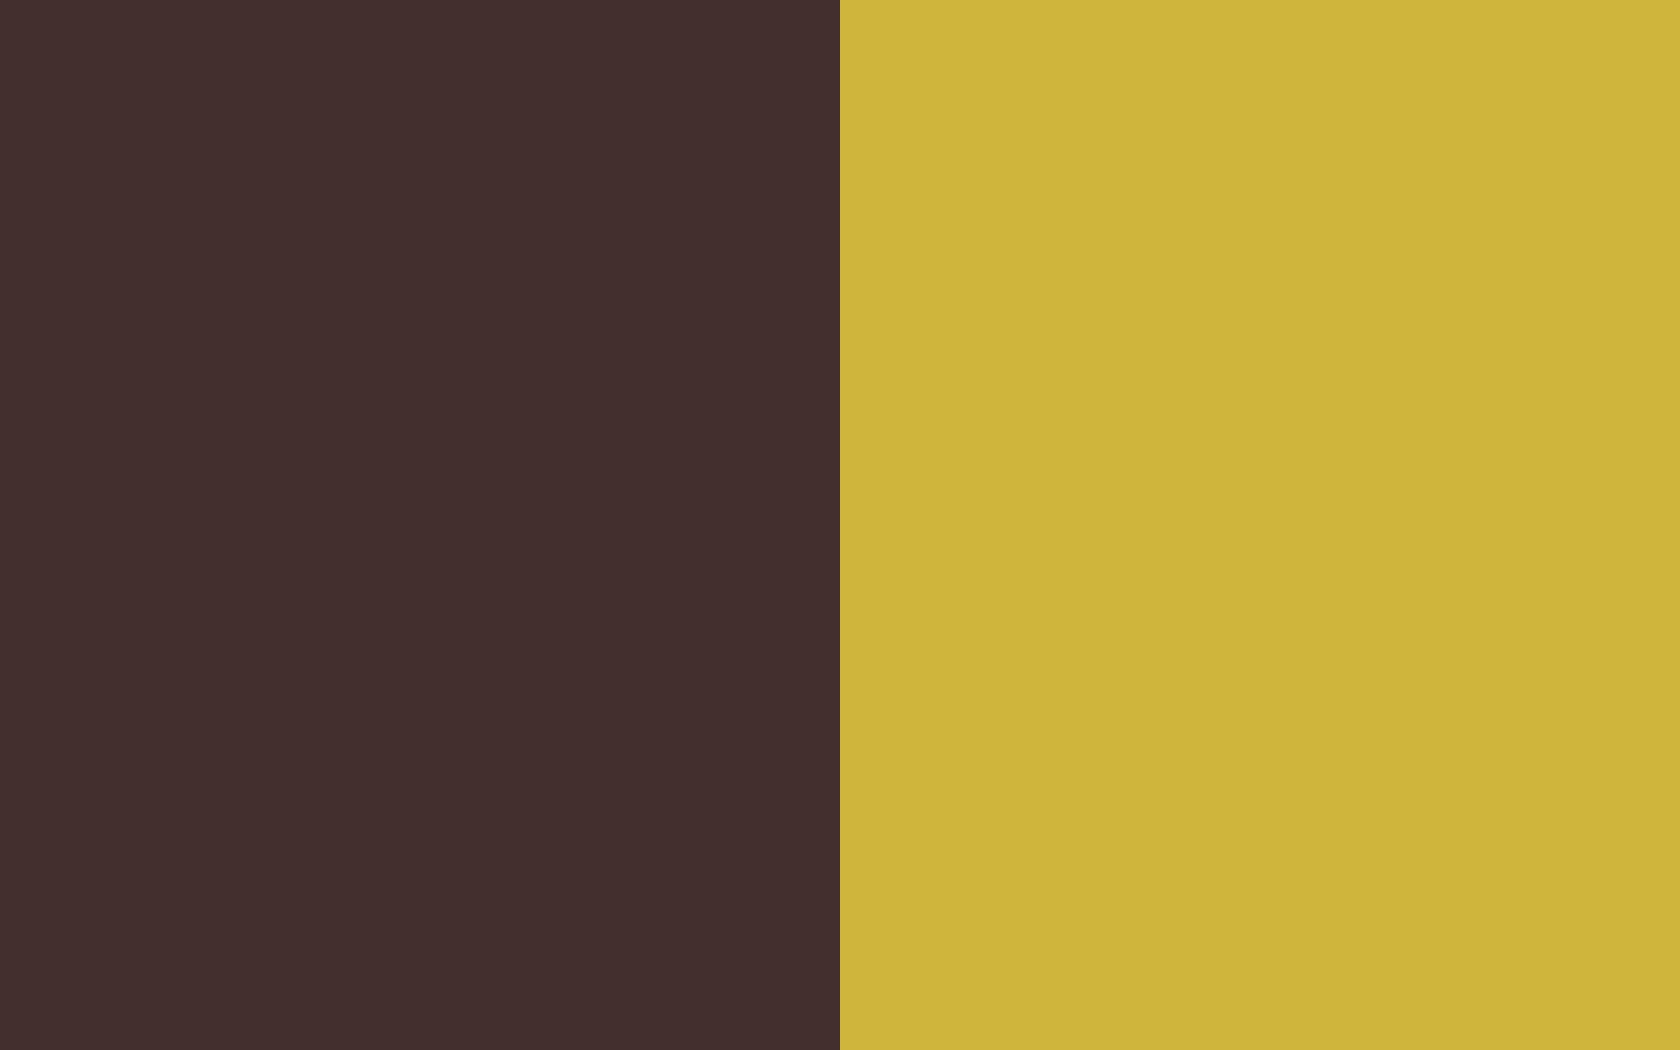 free 1680x1050 resolution old burgundy and gold solid two color 1680x1050